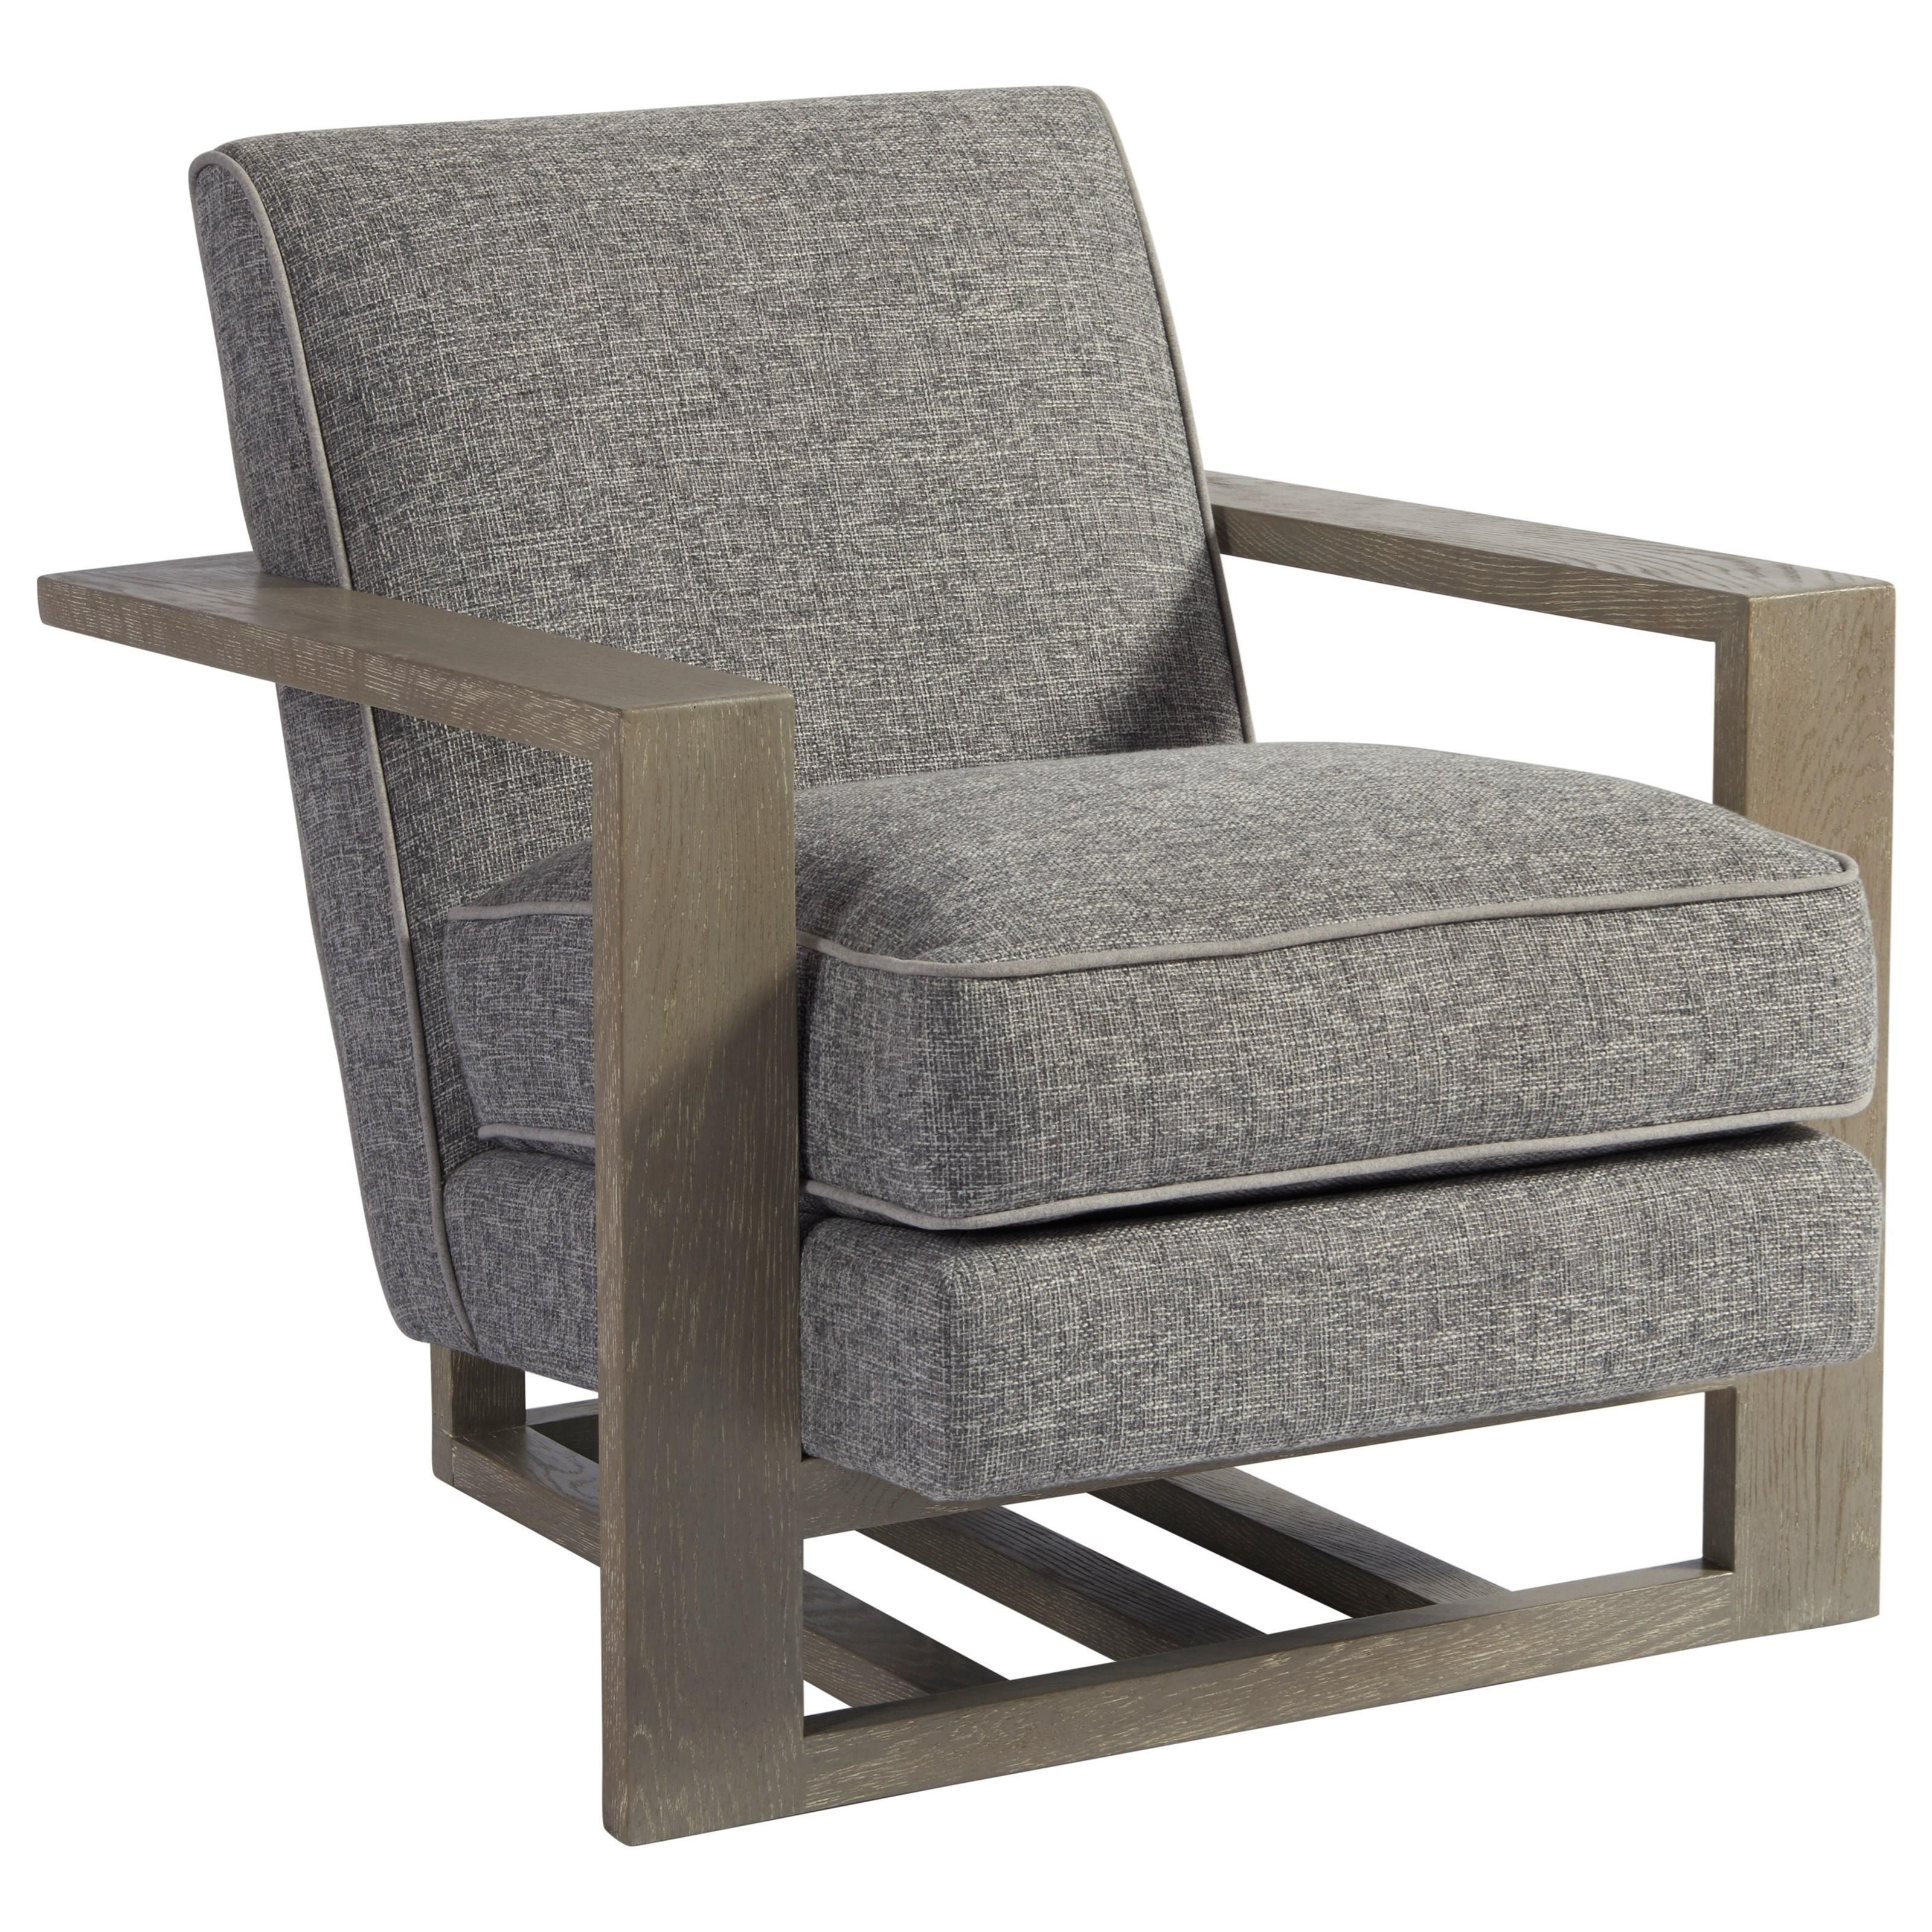 Niles Teague Accent Chair by Universal at Baer's Furniture